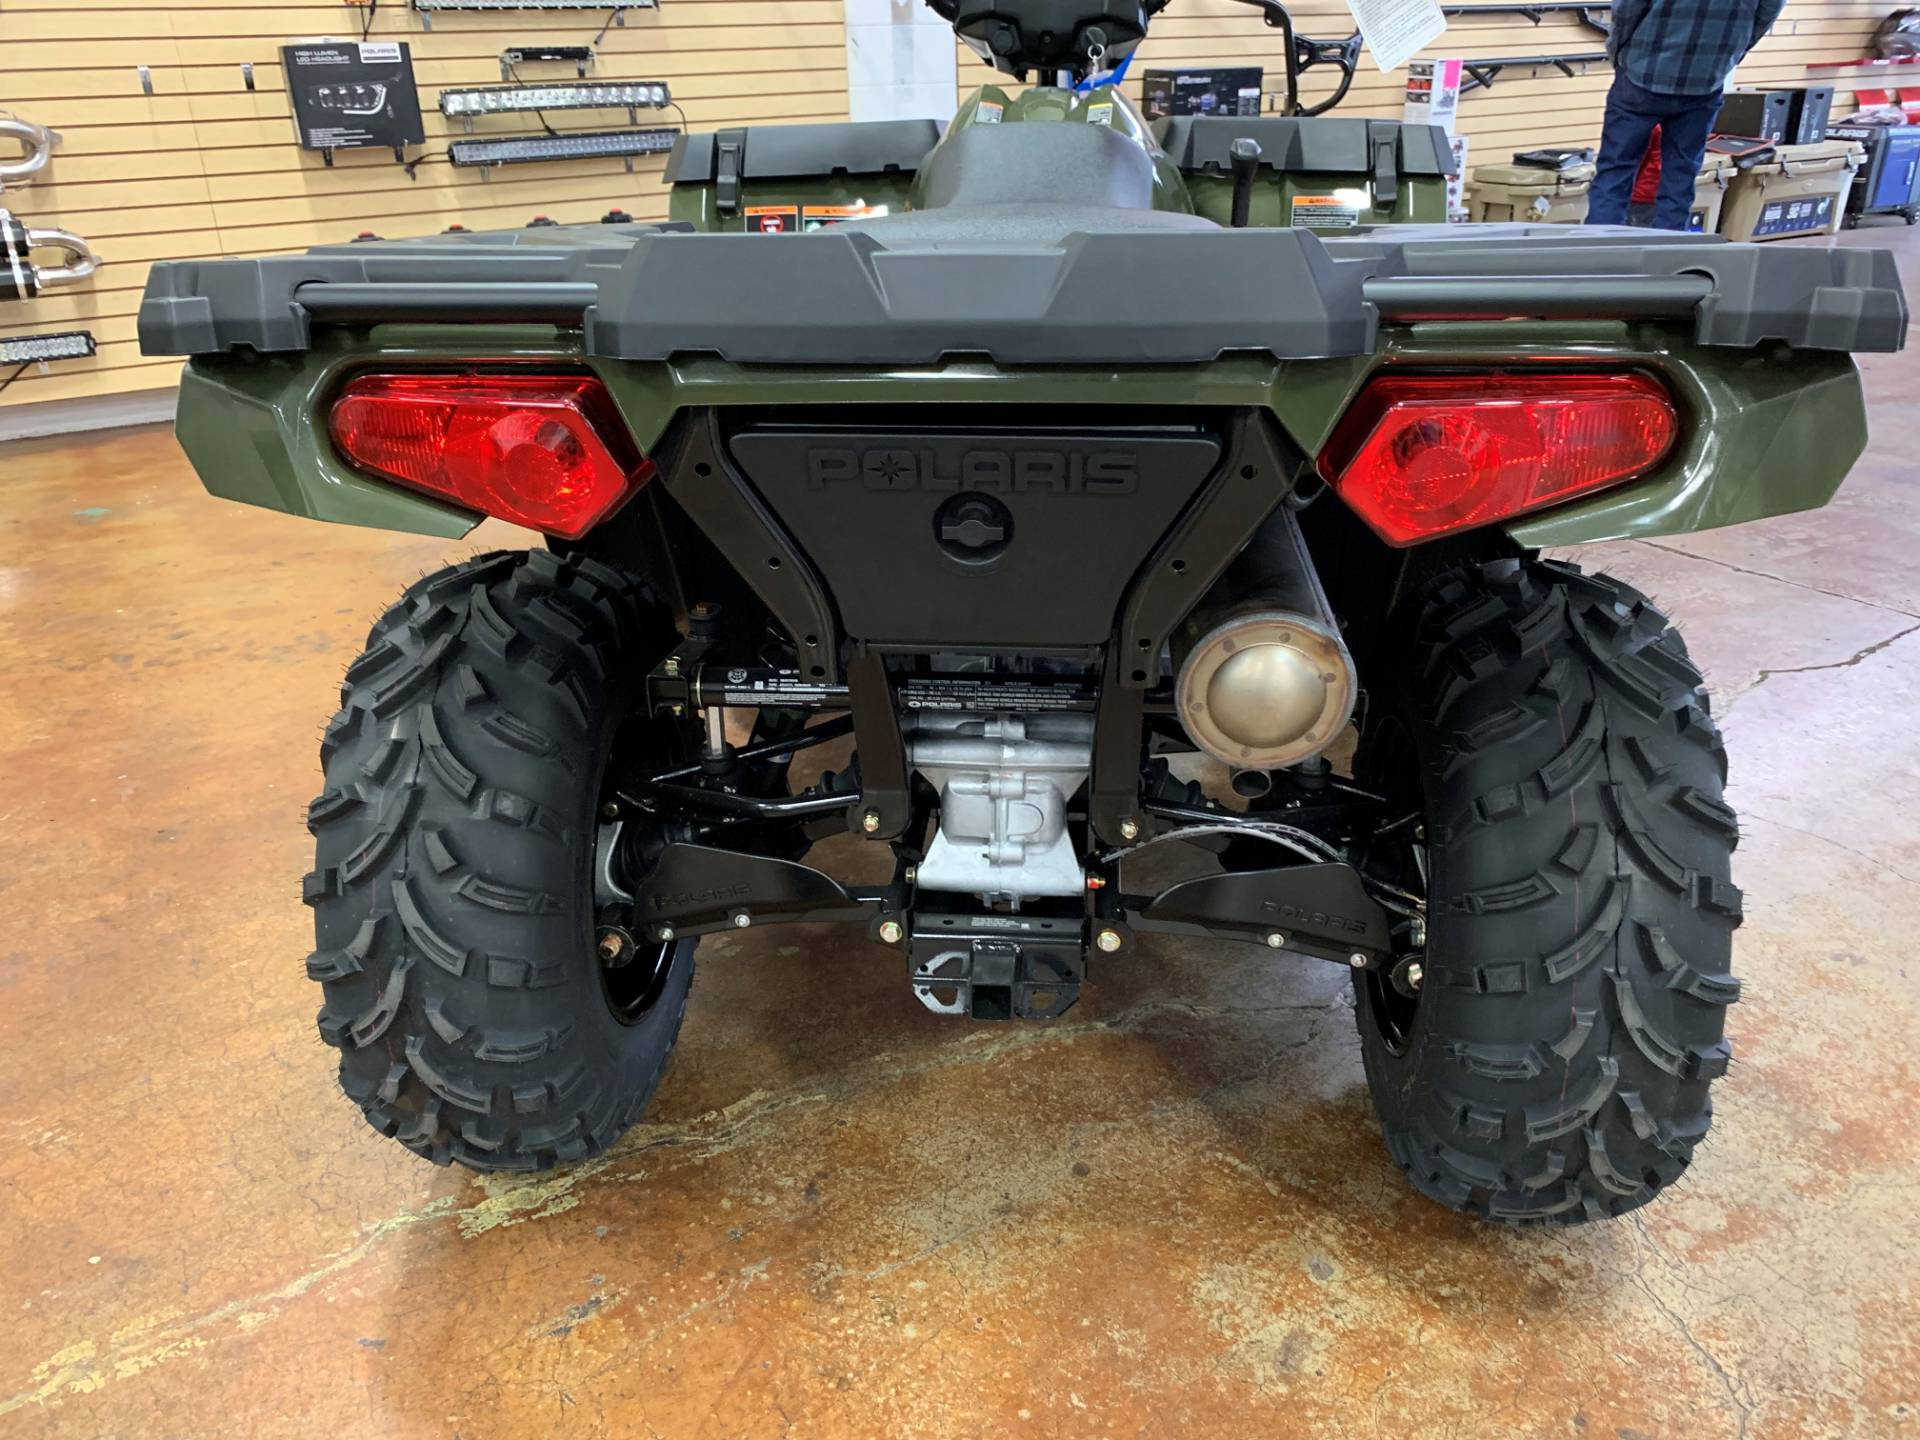 2019 Polaris Sportsman 450 H.O. in Tualatin, Oregon - Photo 4